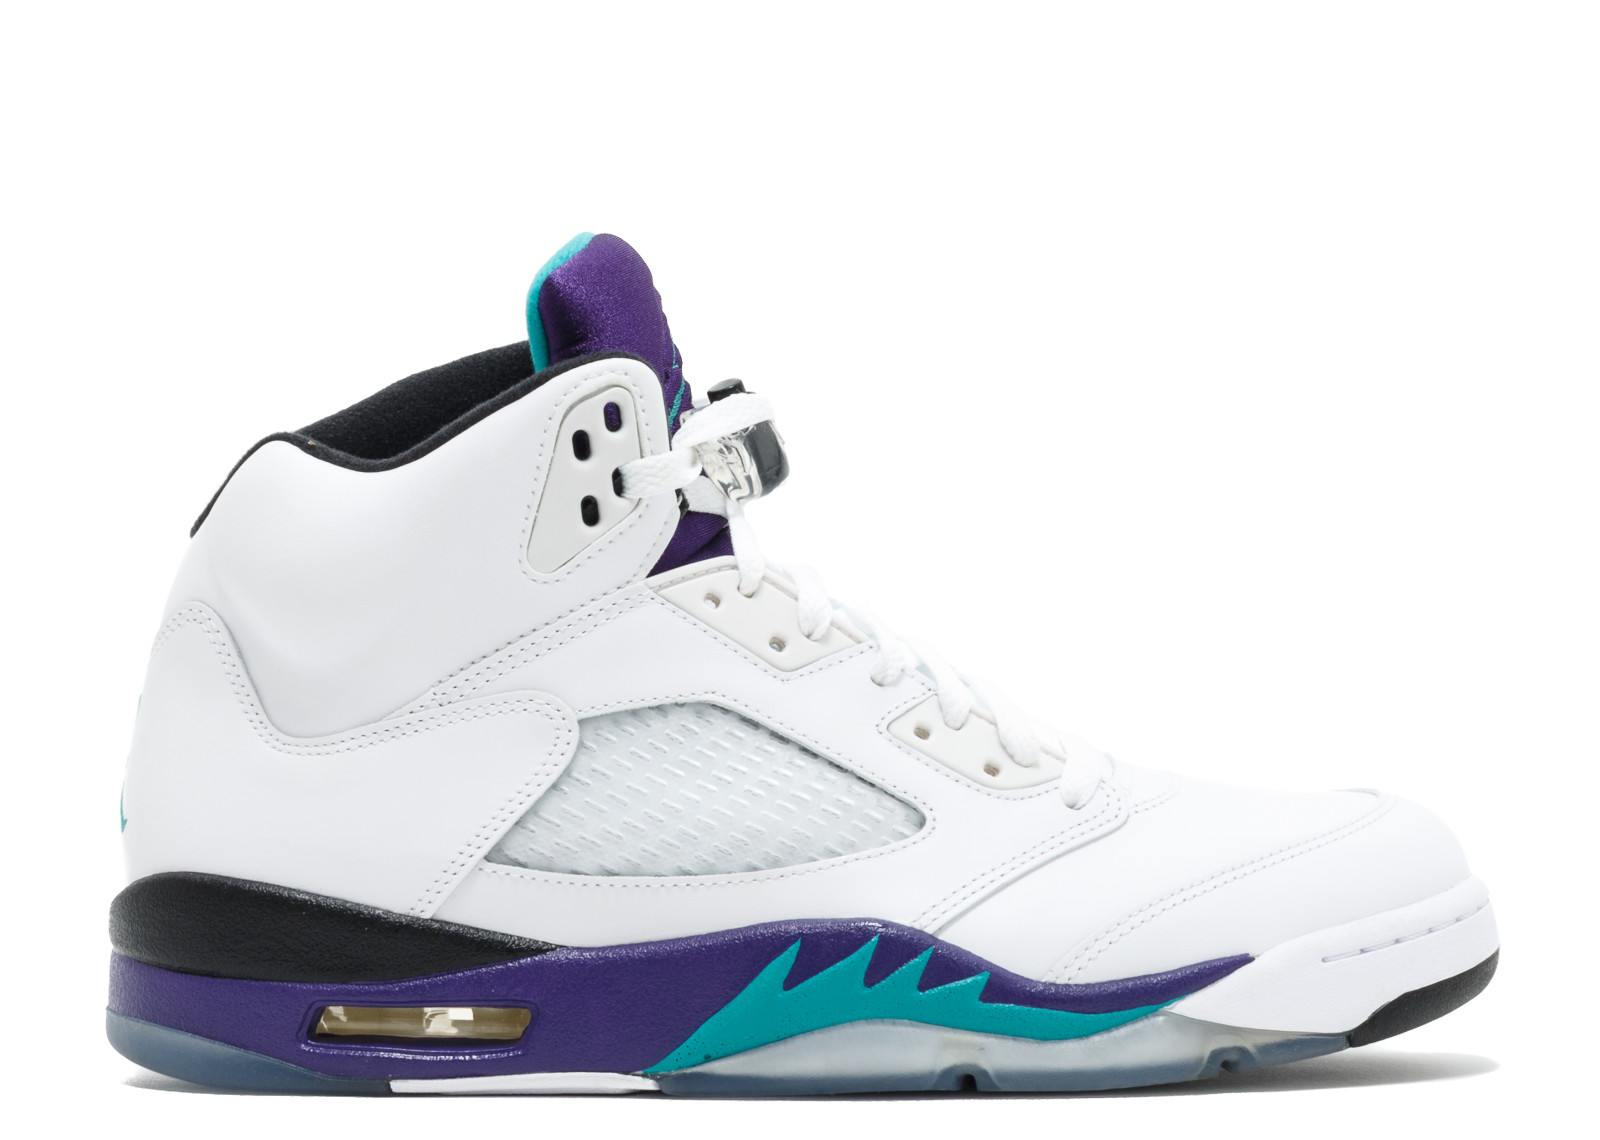 Air Jordan 5 Grape 2013 Release